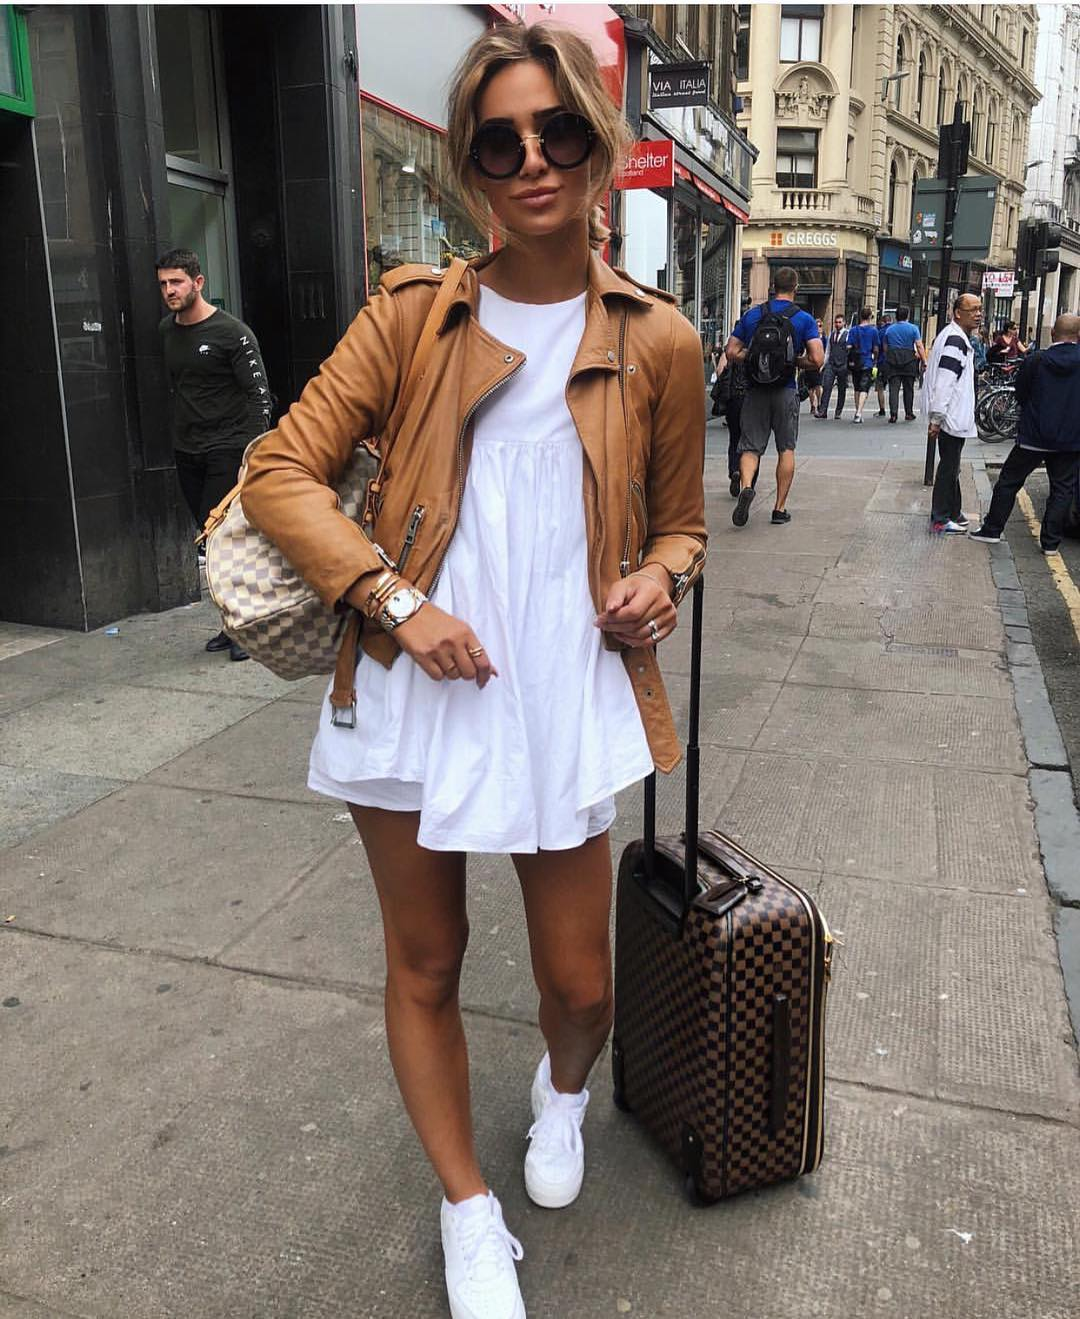 Light Brown Leather Jacket For Summer Vacation 2019